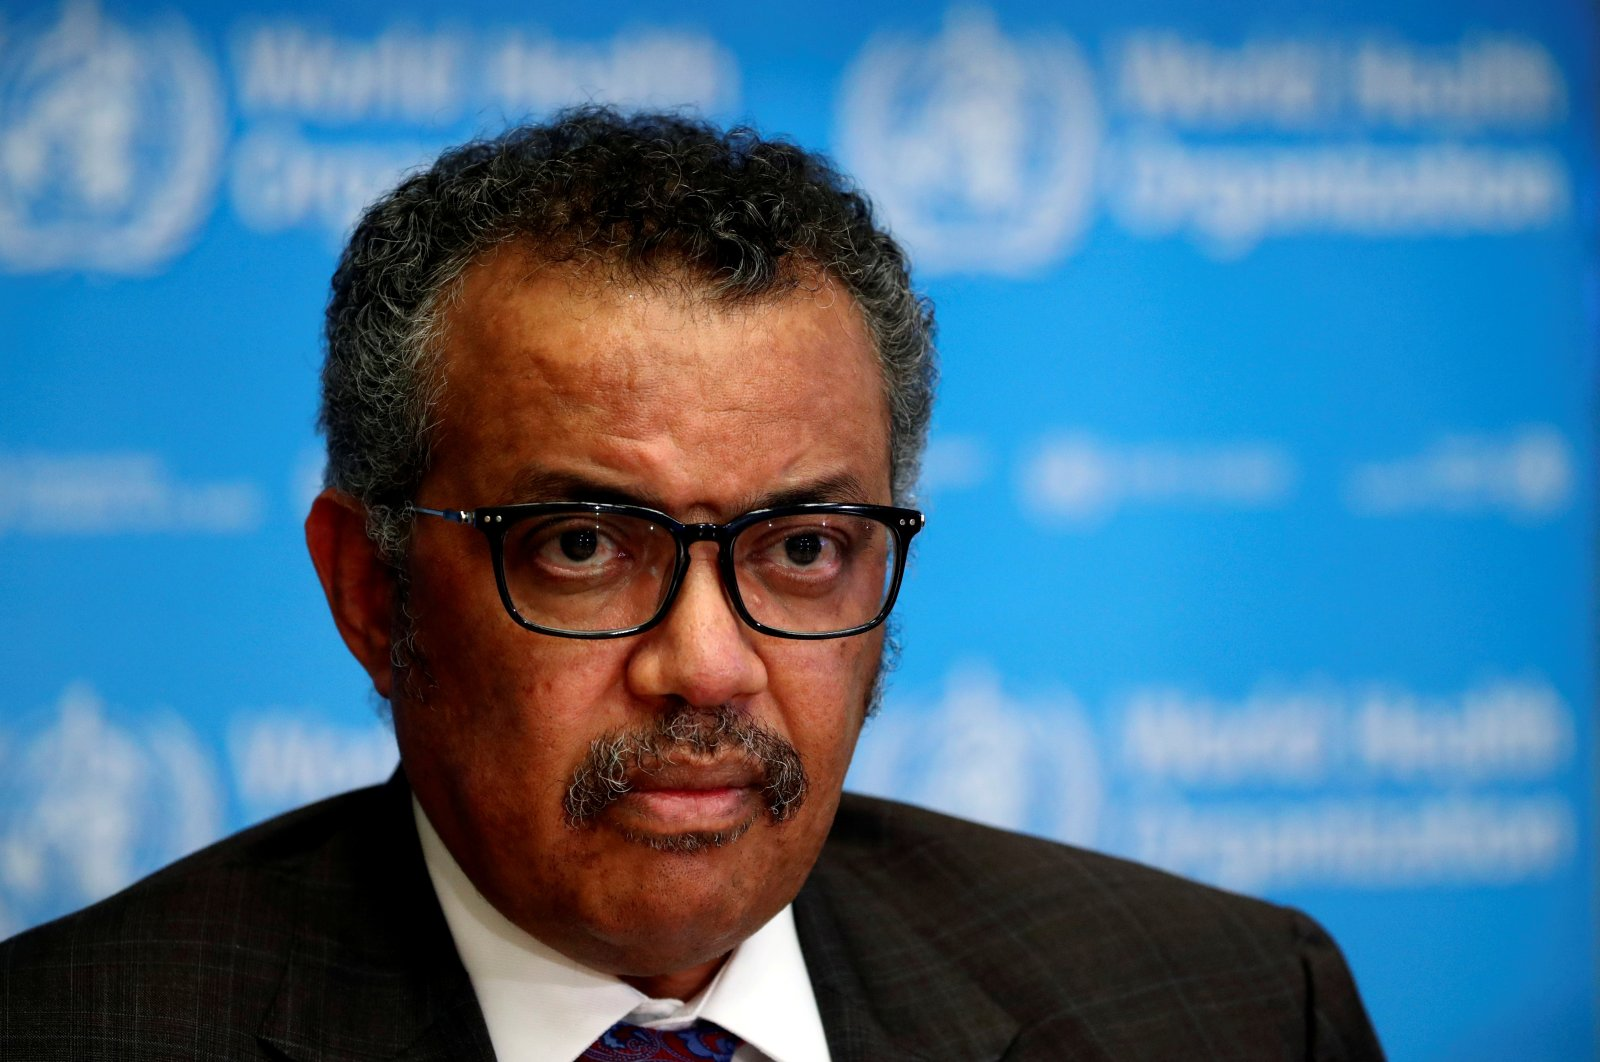 Director General of the World Health Organization (WHO) Tedros Adhanom Ghebreyesus attends a news conference on the situation of the coronavirus (COVID-2019), in Geneva, Switzerland, Feb. 28, 2020. (Reuters Photo)